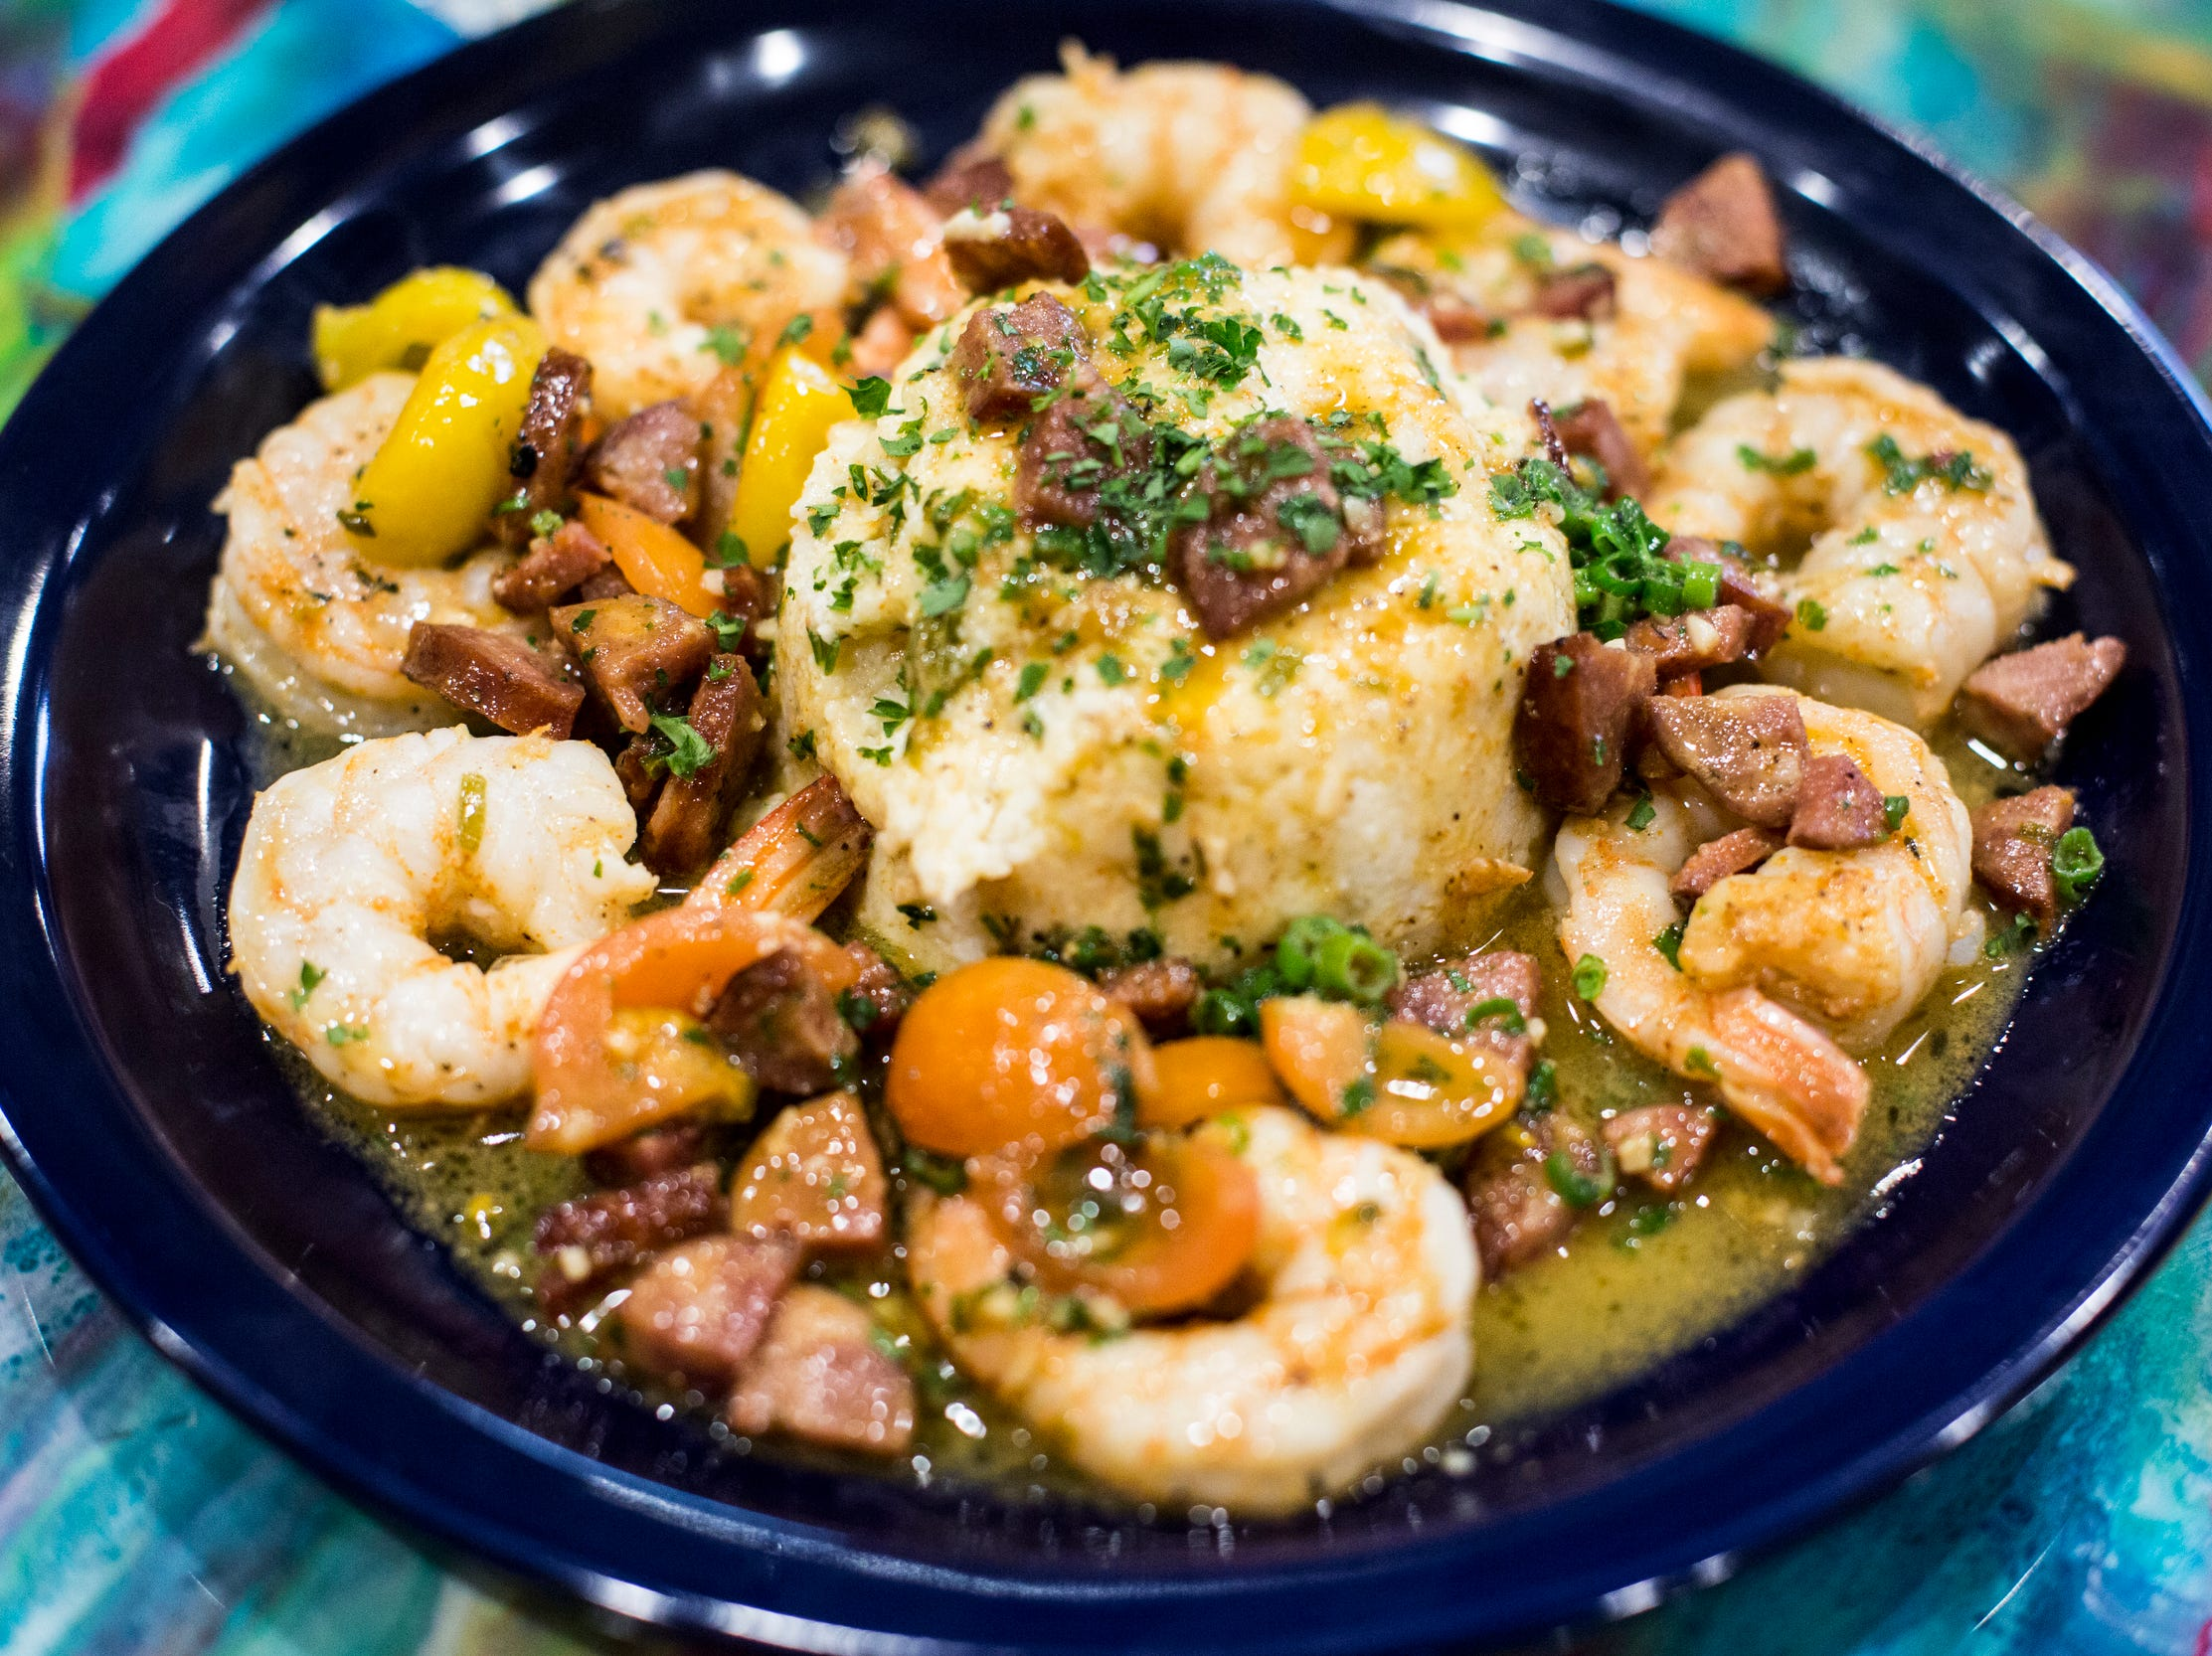 February 04 2019 - Shrimp and grits featuring jumbo gulf shrimp, slow cooked andouille sausage and smoked plum tomatoes over classic stone ground cheese grits is available at Elwood's Shells. Elwood's Shells is located at 916 S. Cooper Street.